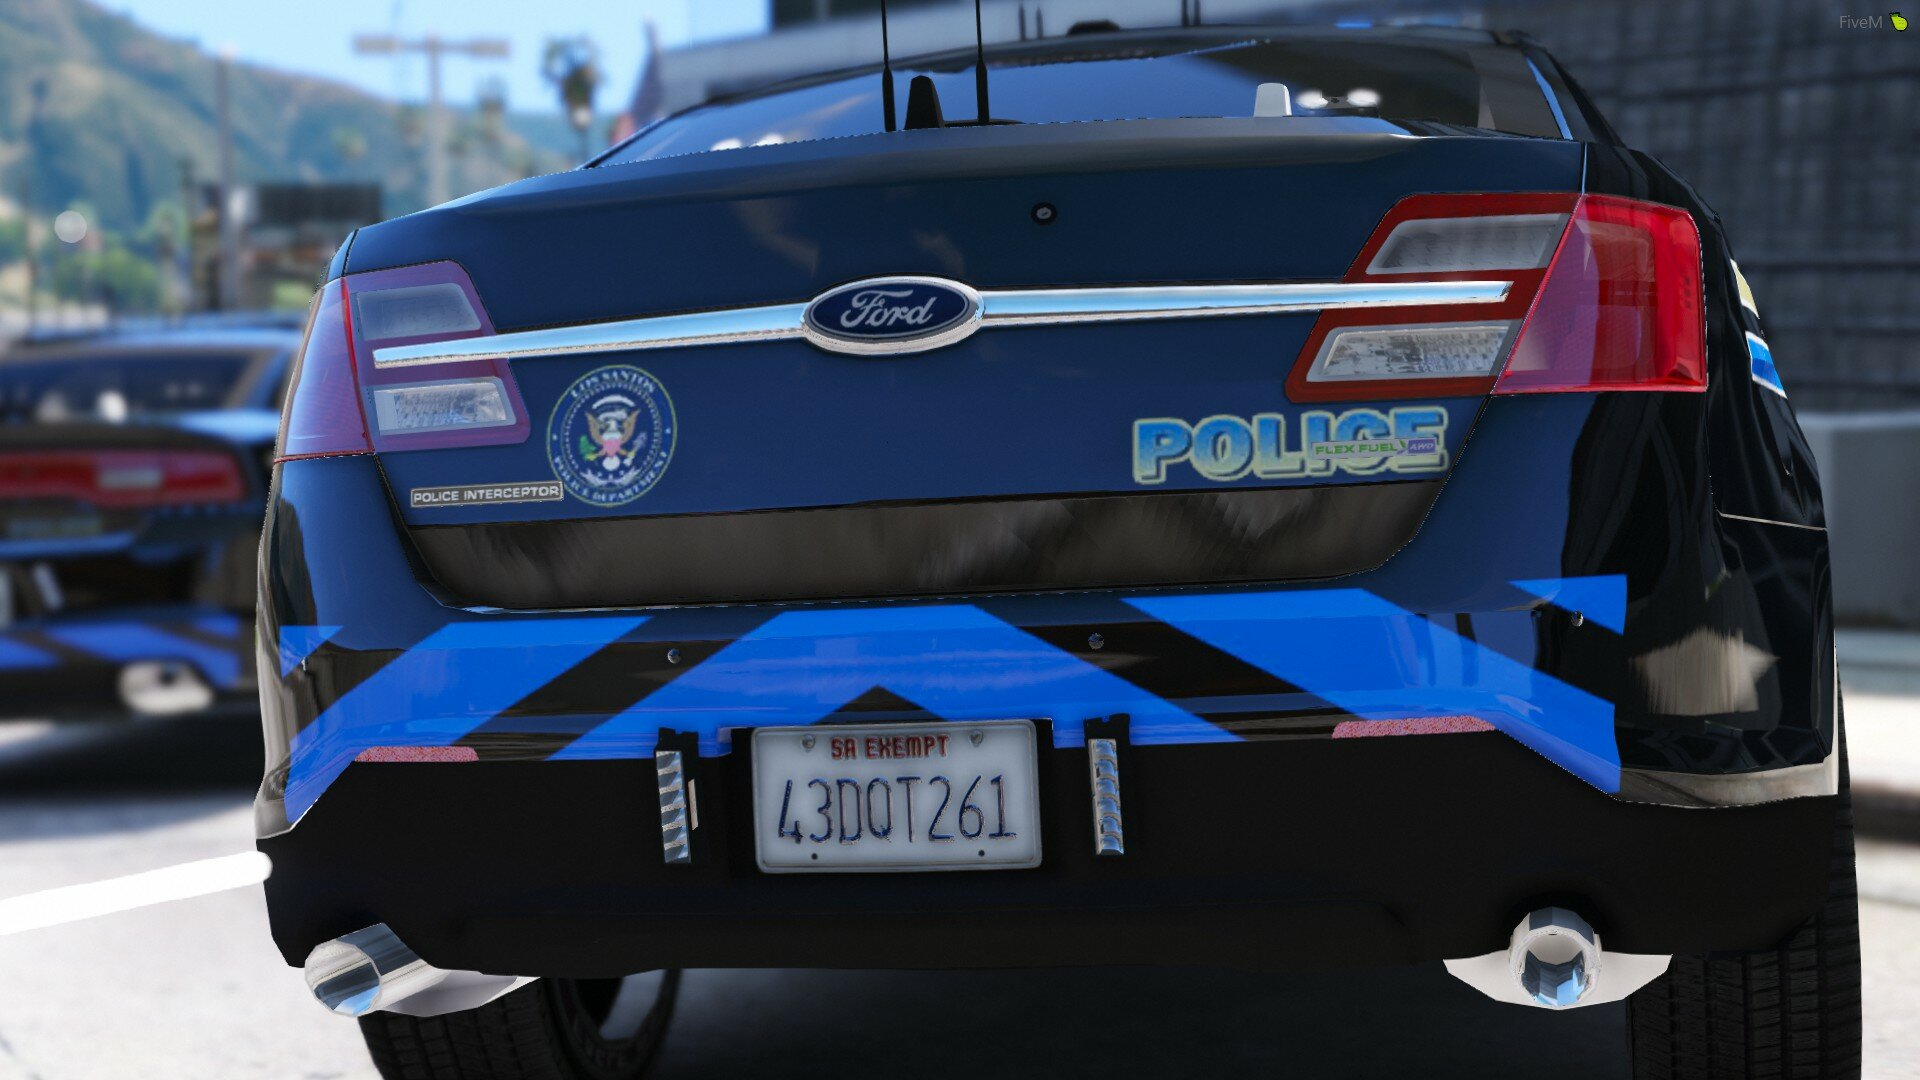 LSPD Texture (Skin) Pack Based On Chester County Sheriffs Office (S.C.)